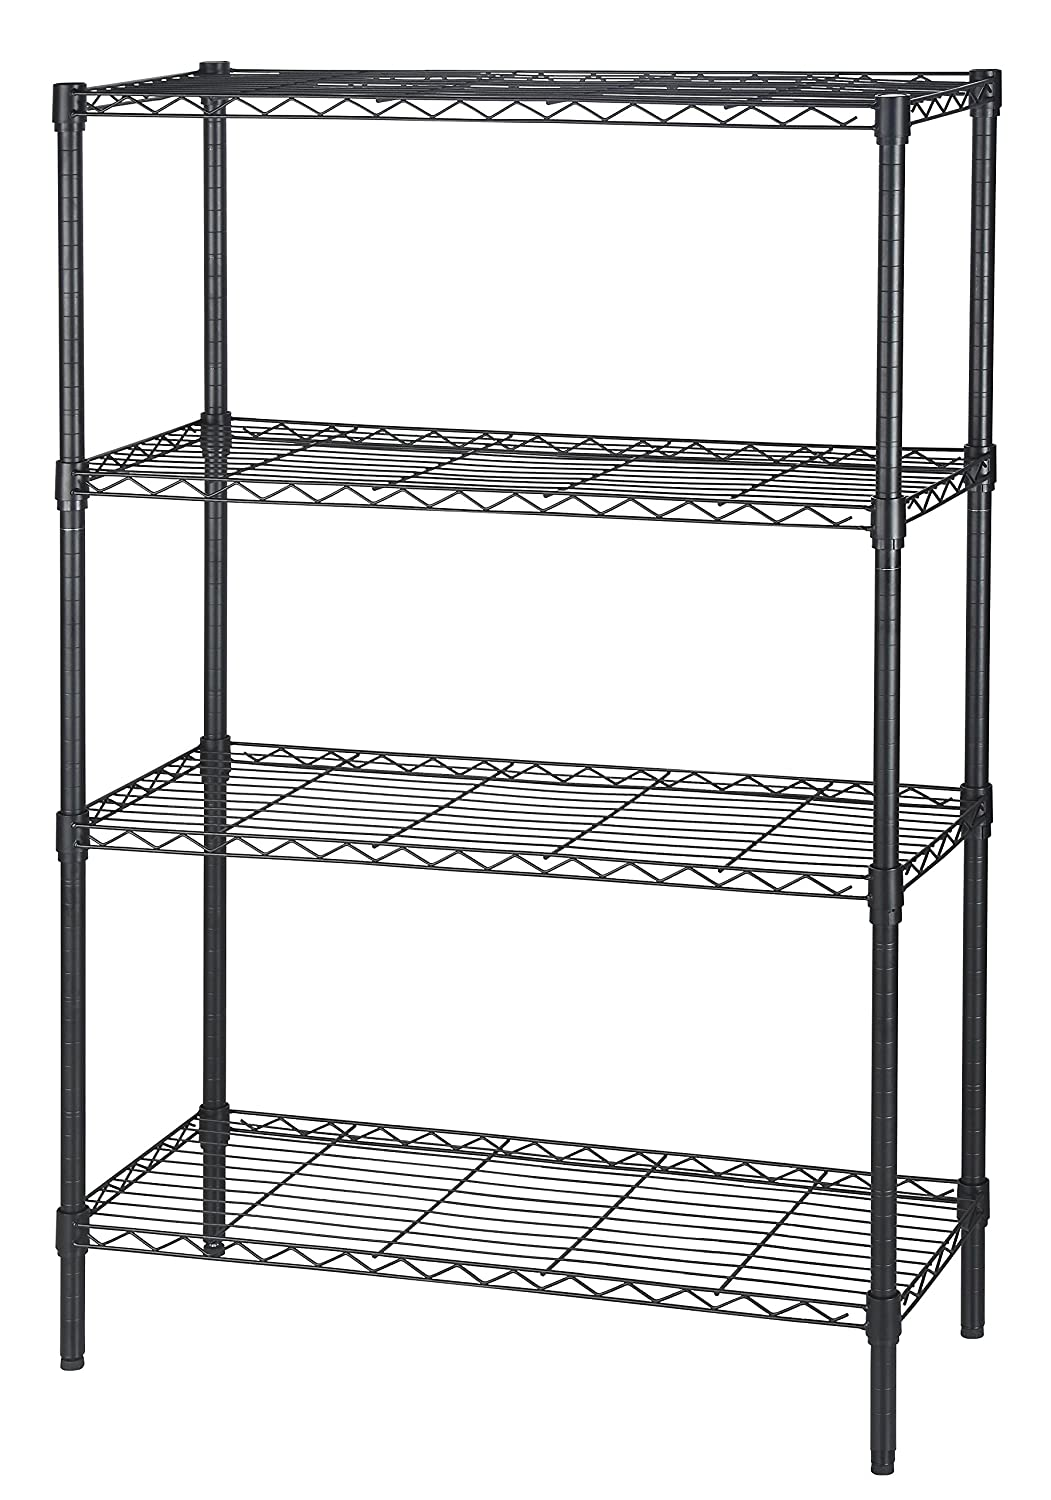 finnhomy 4tier thicken pole heavy duty wire shelving unit adjustable steel wire rack shelving 4 shelves steel storage rack with stable leveling feet black - Metal Shelving Unit